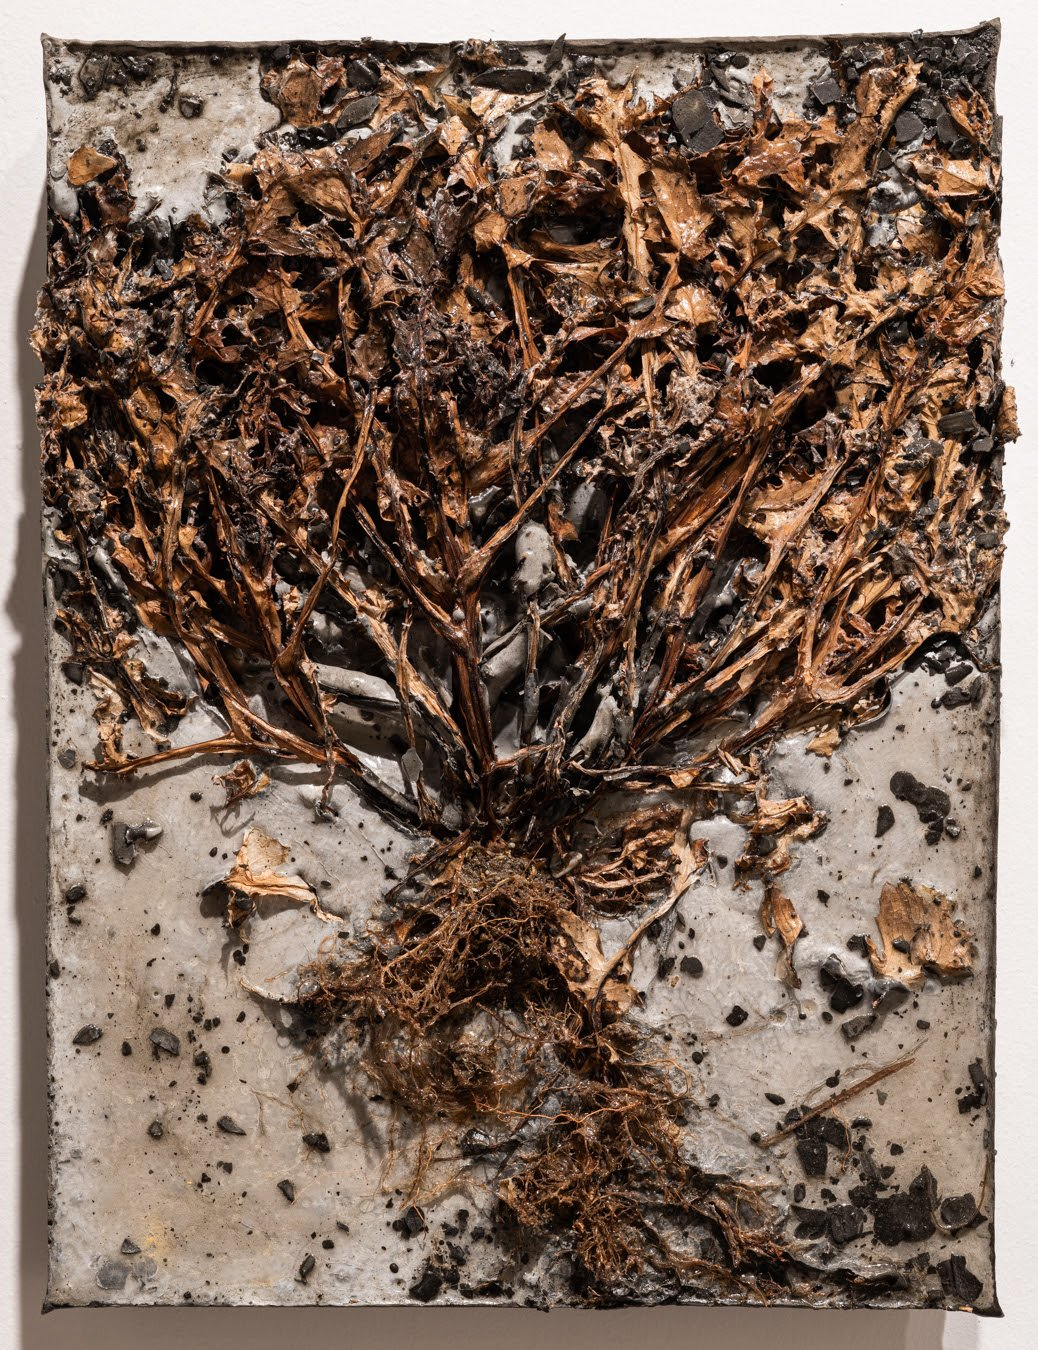 Aida Mahmudova, From Immortality Series, 2020, Mixed technique, 39 x 28 x 5 cm Courtesy the artist and Sapar Contemporary